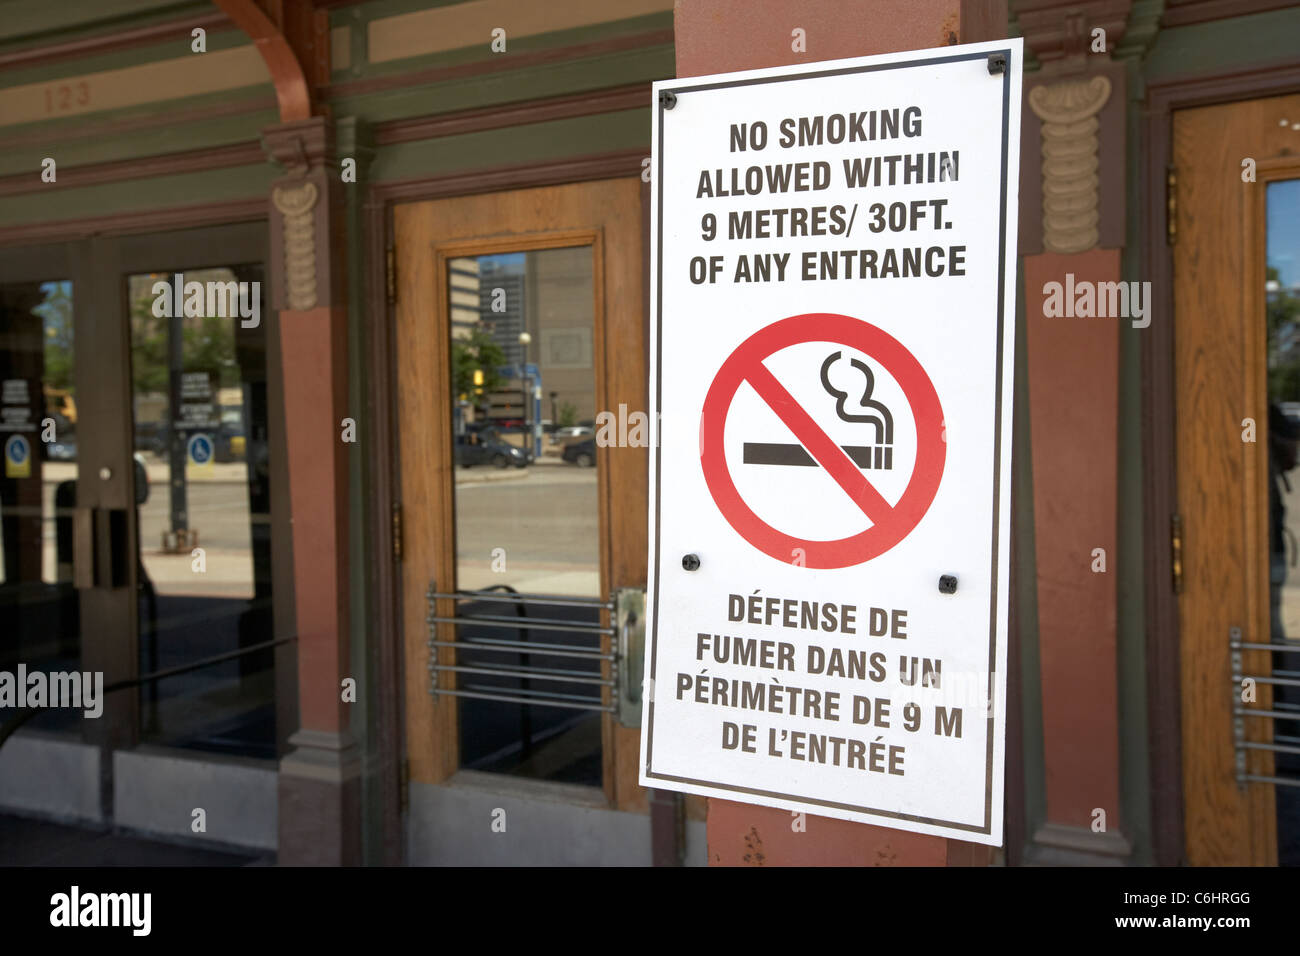 no smoking allowed within 9 metres distance of any entrance on public building winnipeg manitoba canada - Stock Image